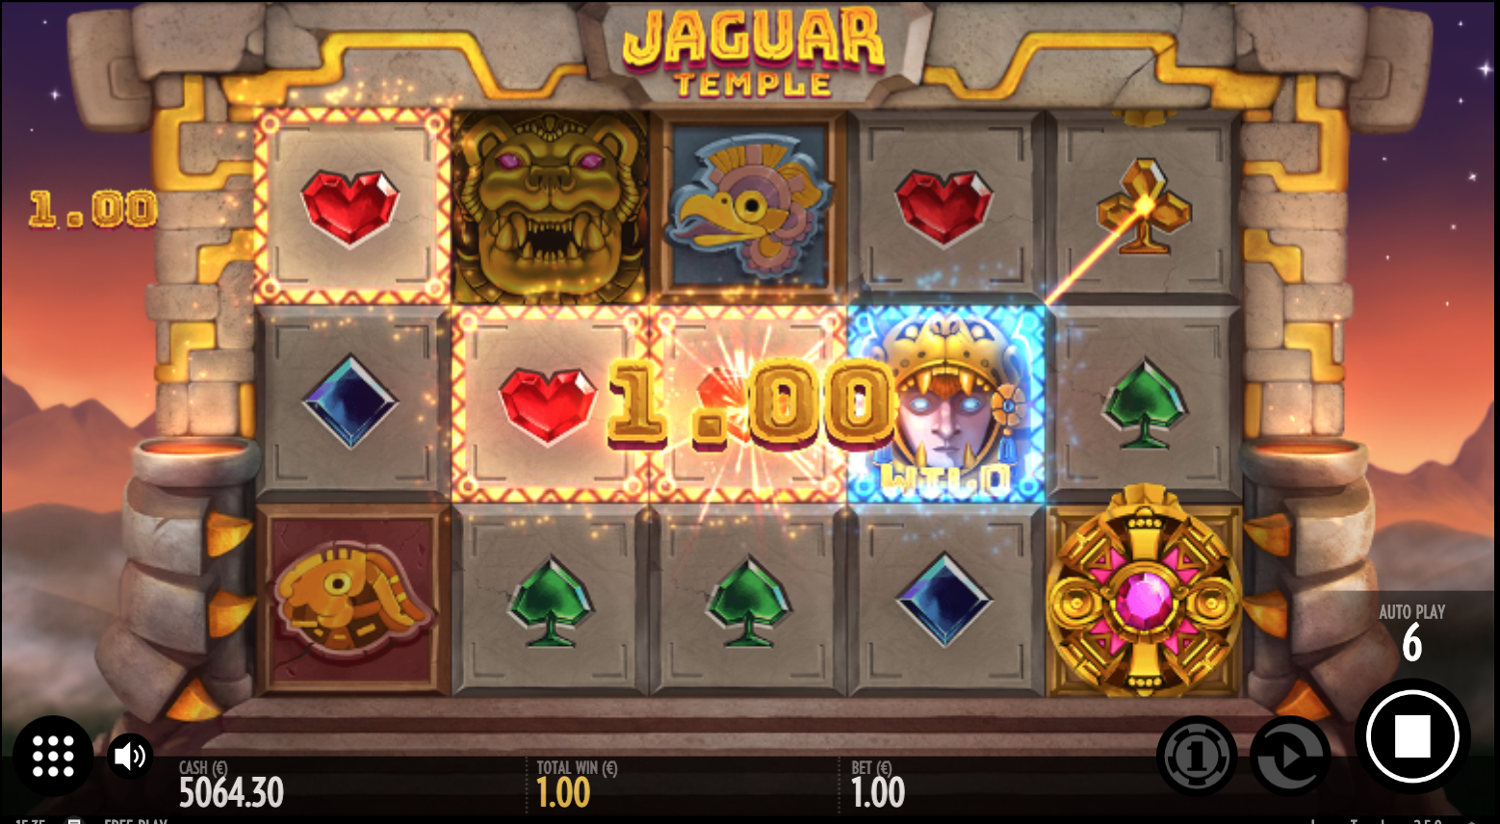 Jaguar Temple slot win